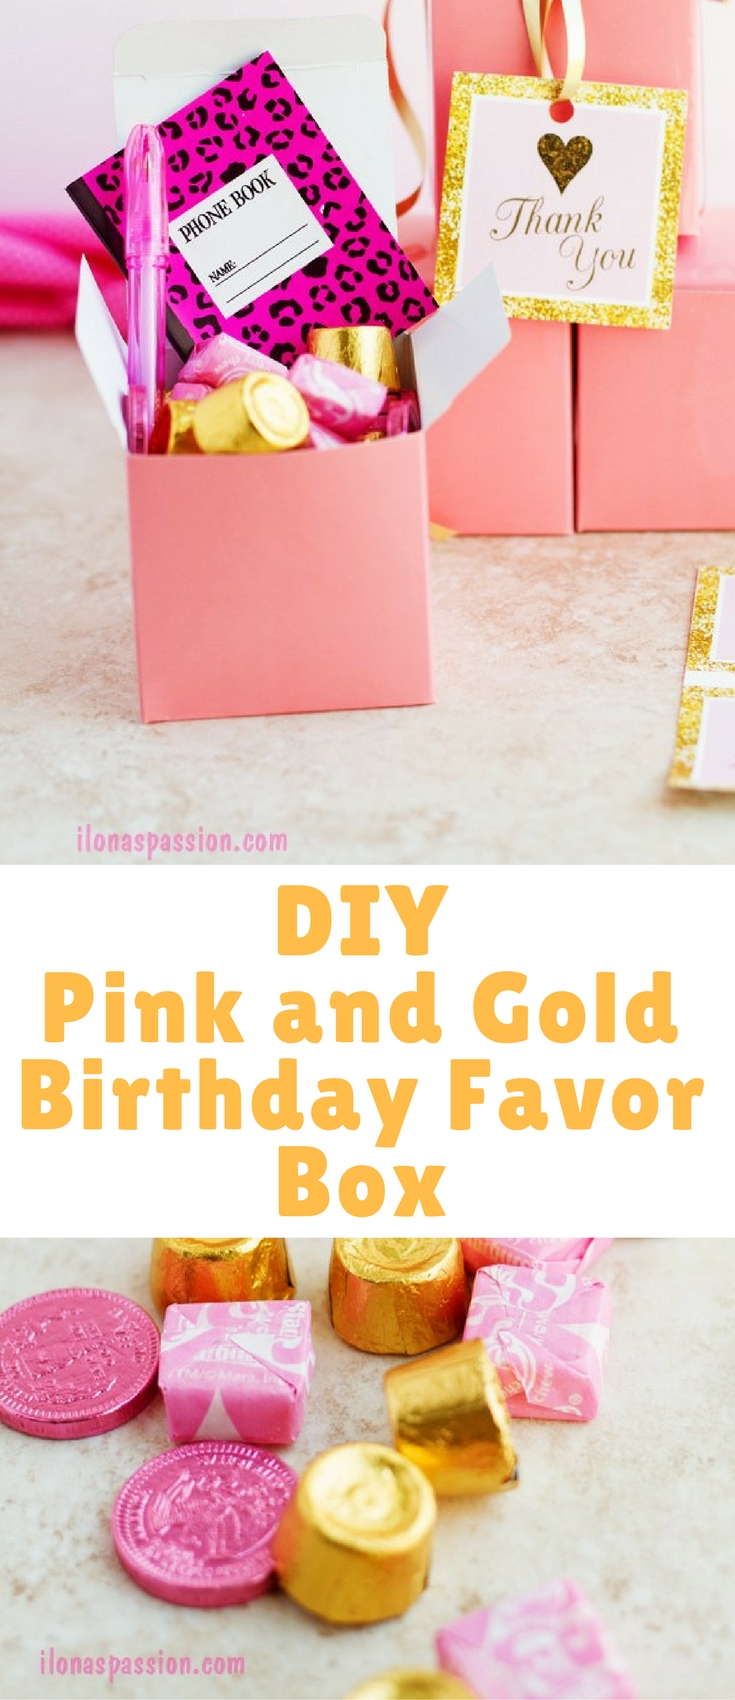 DIY Pink and Gold Birthday Favor Box Idea - Blogger Bests